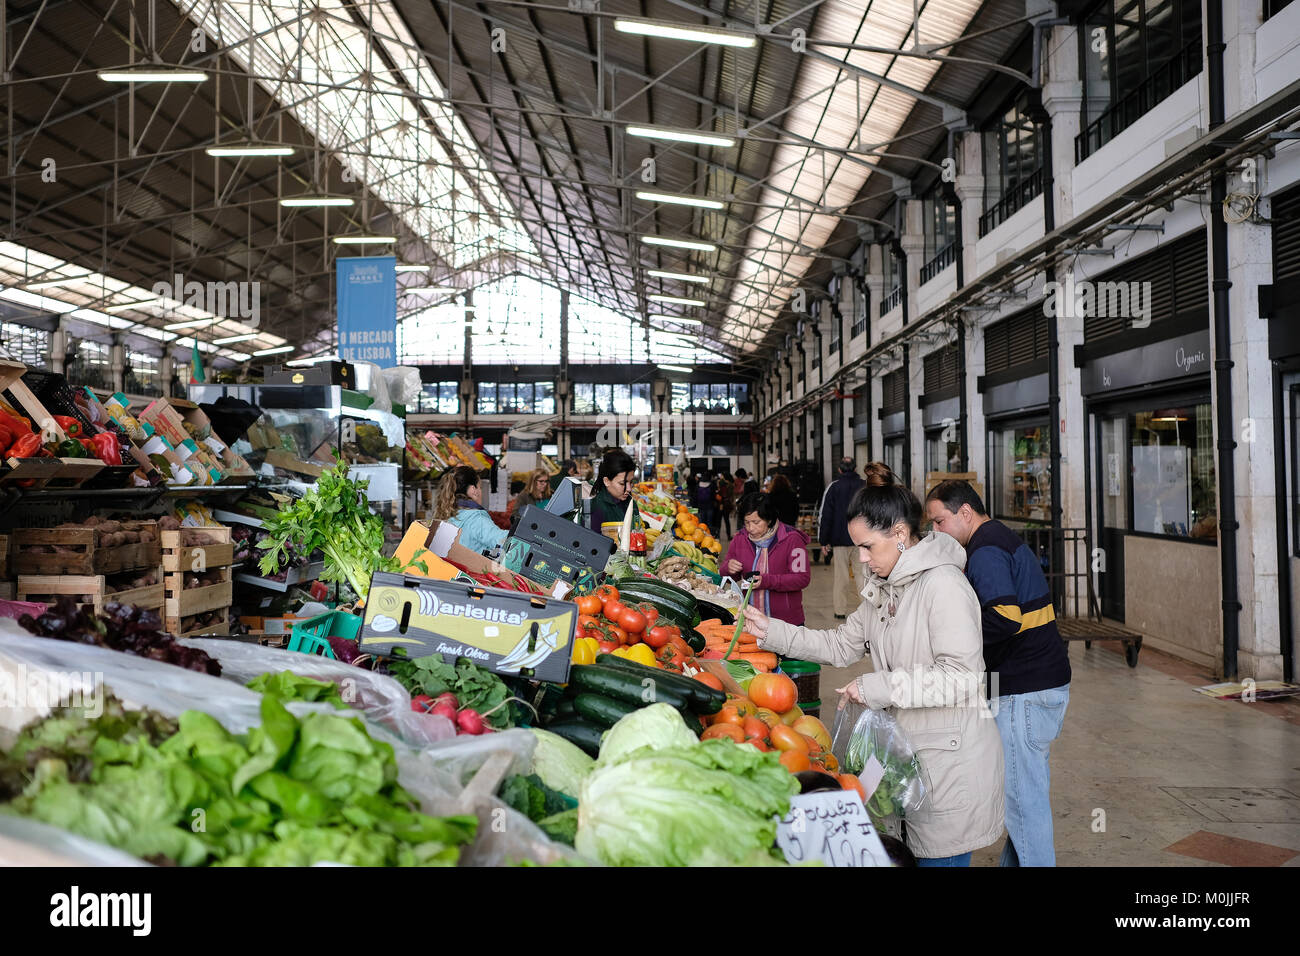 The public markets are always a must to visit places to get to know better how the locals live, and eat. This pictures Stock Photo